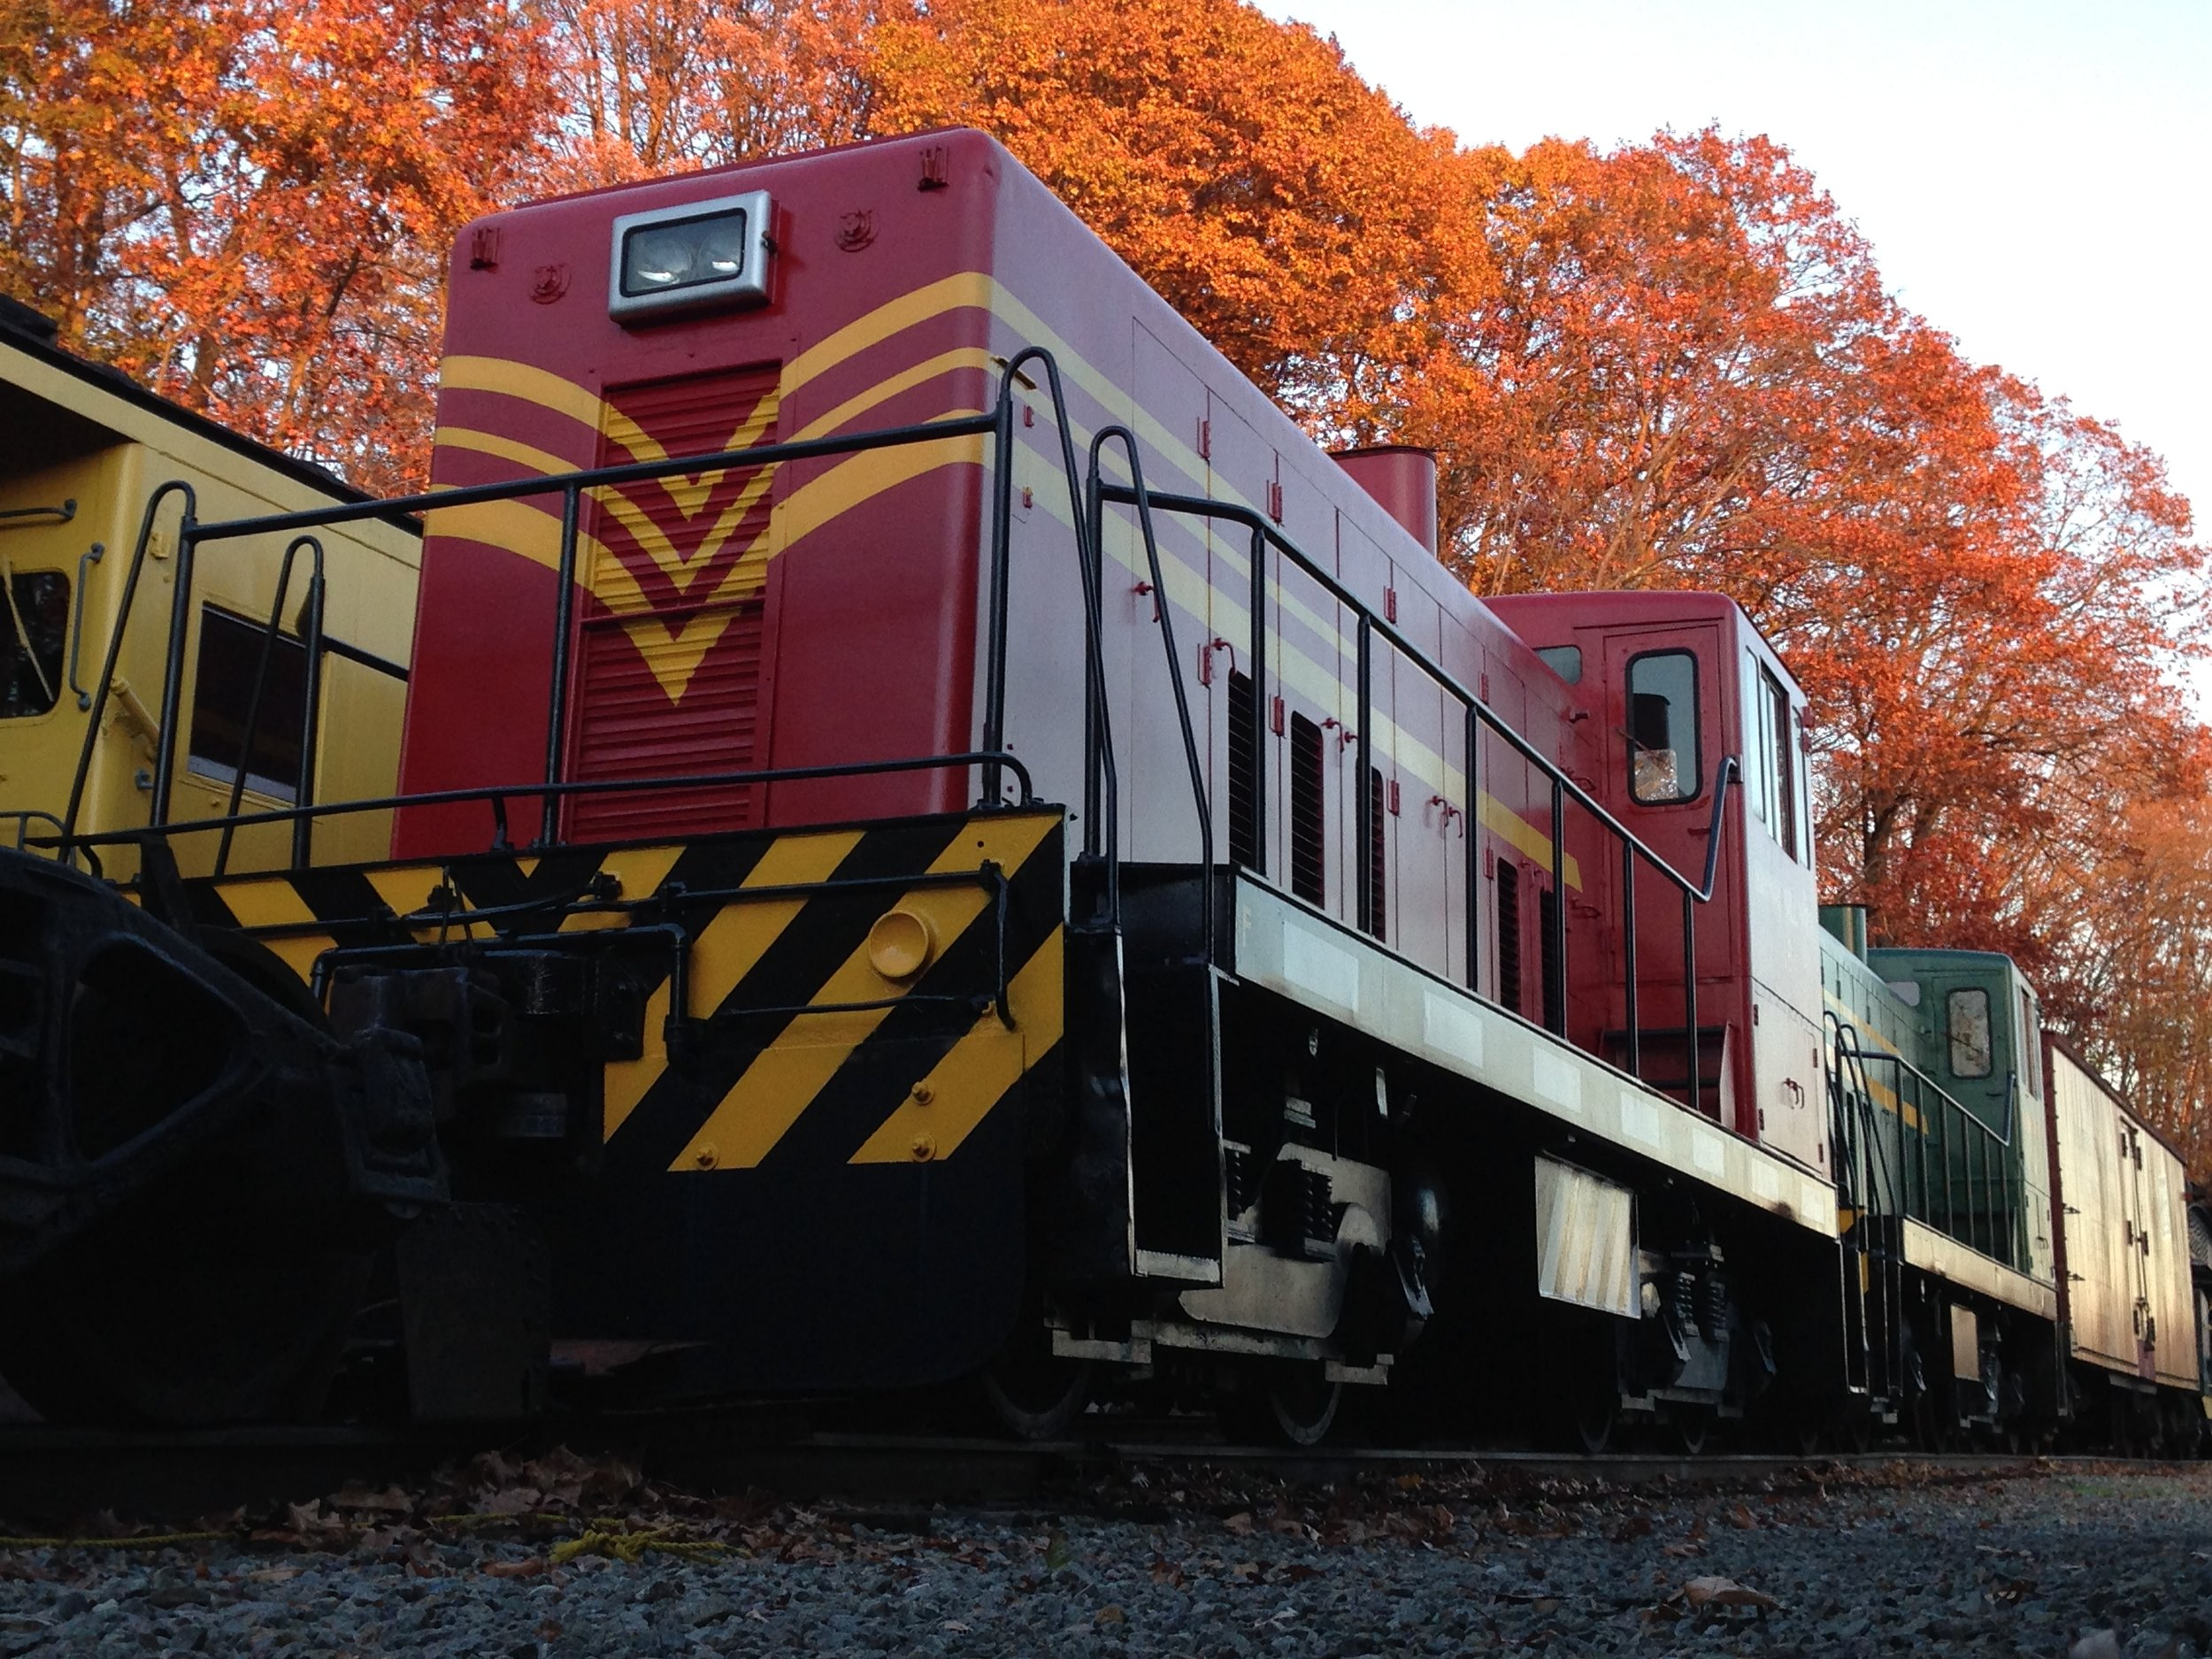 No. 16 on display at the Whippany Railway Museum in late-2014.  (Richard J. King photo)